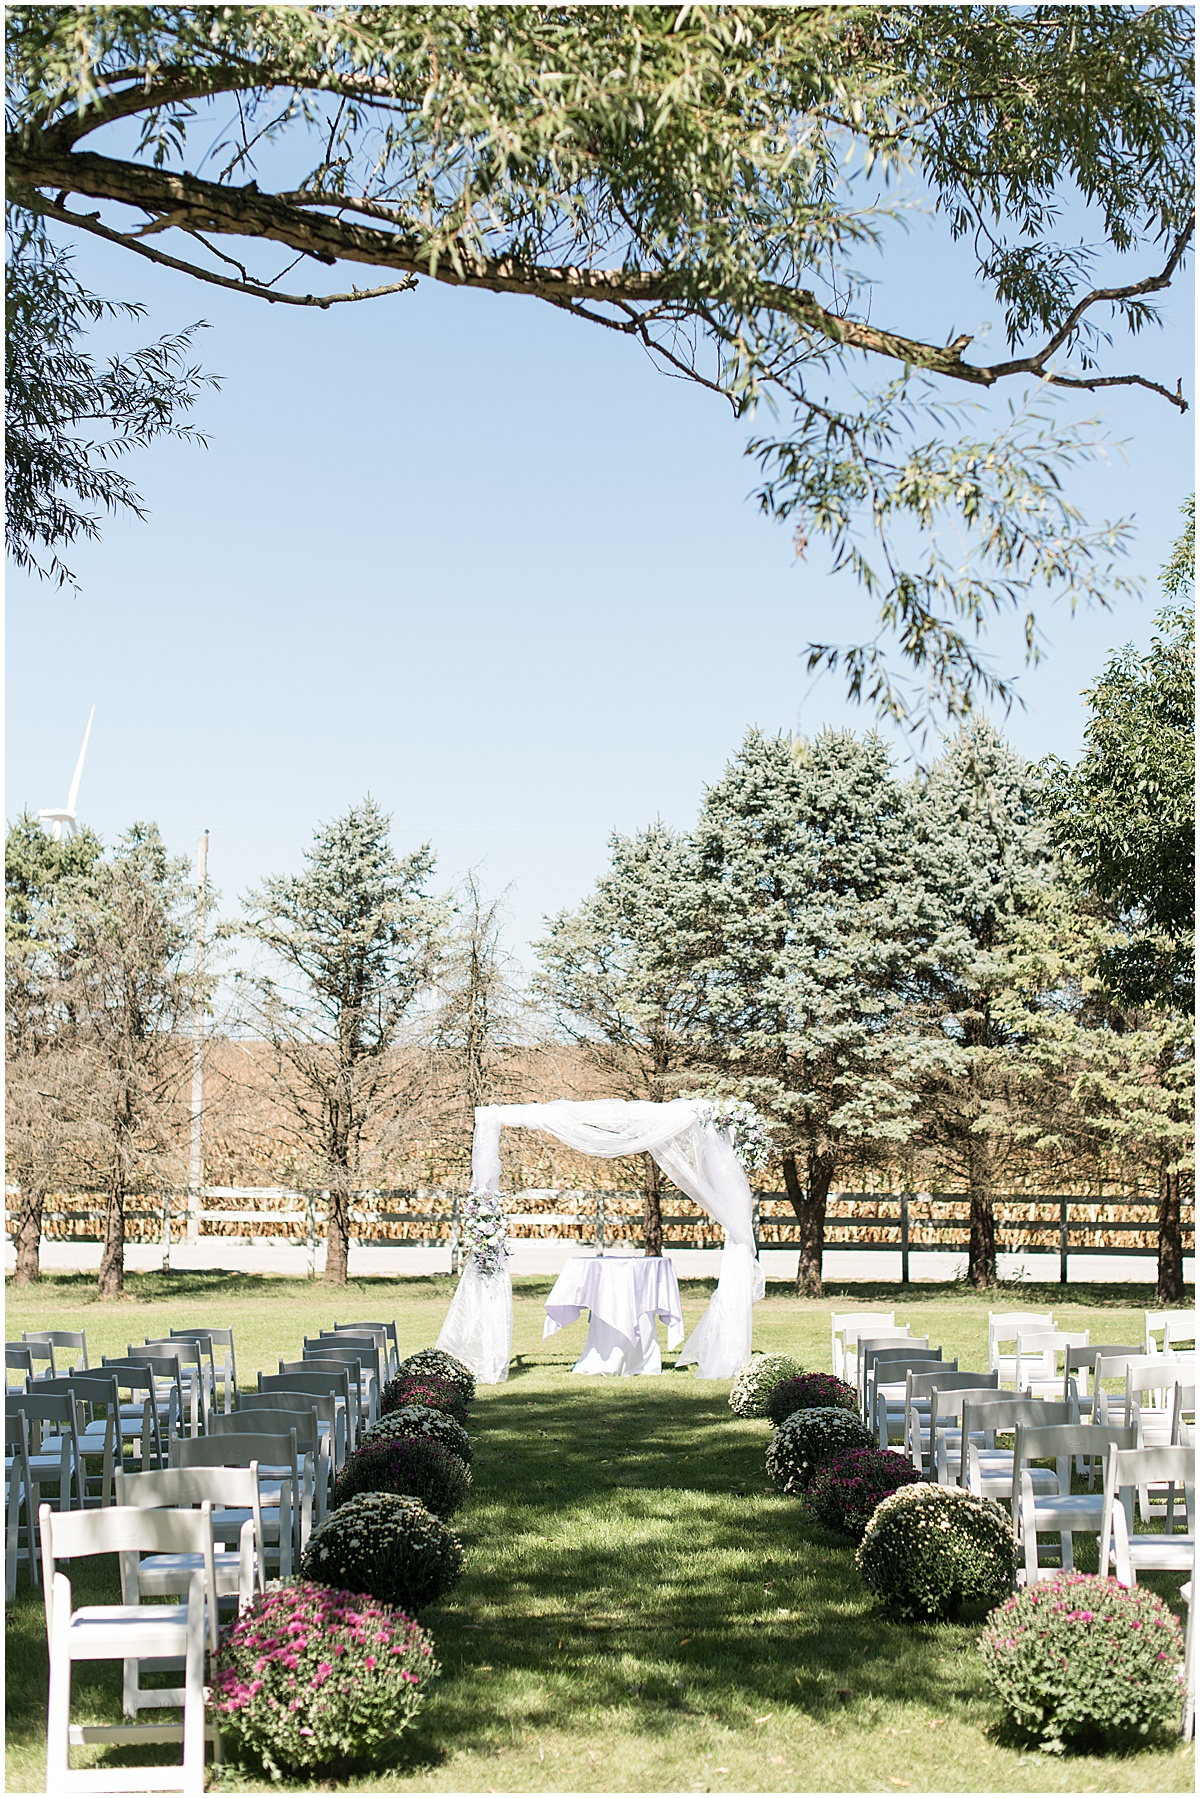 Ceremony detail photos for wedding at Wagner Angus Barn in Wolcott, Indiana